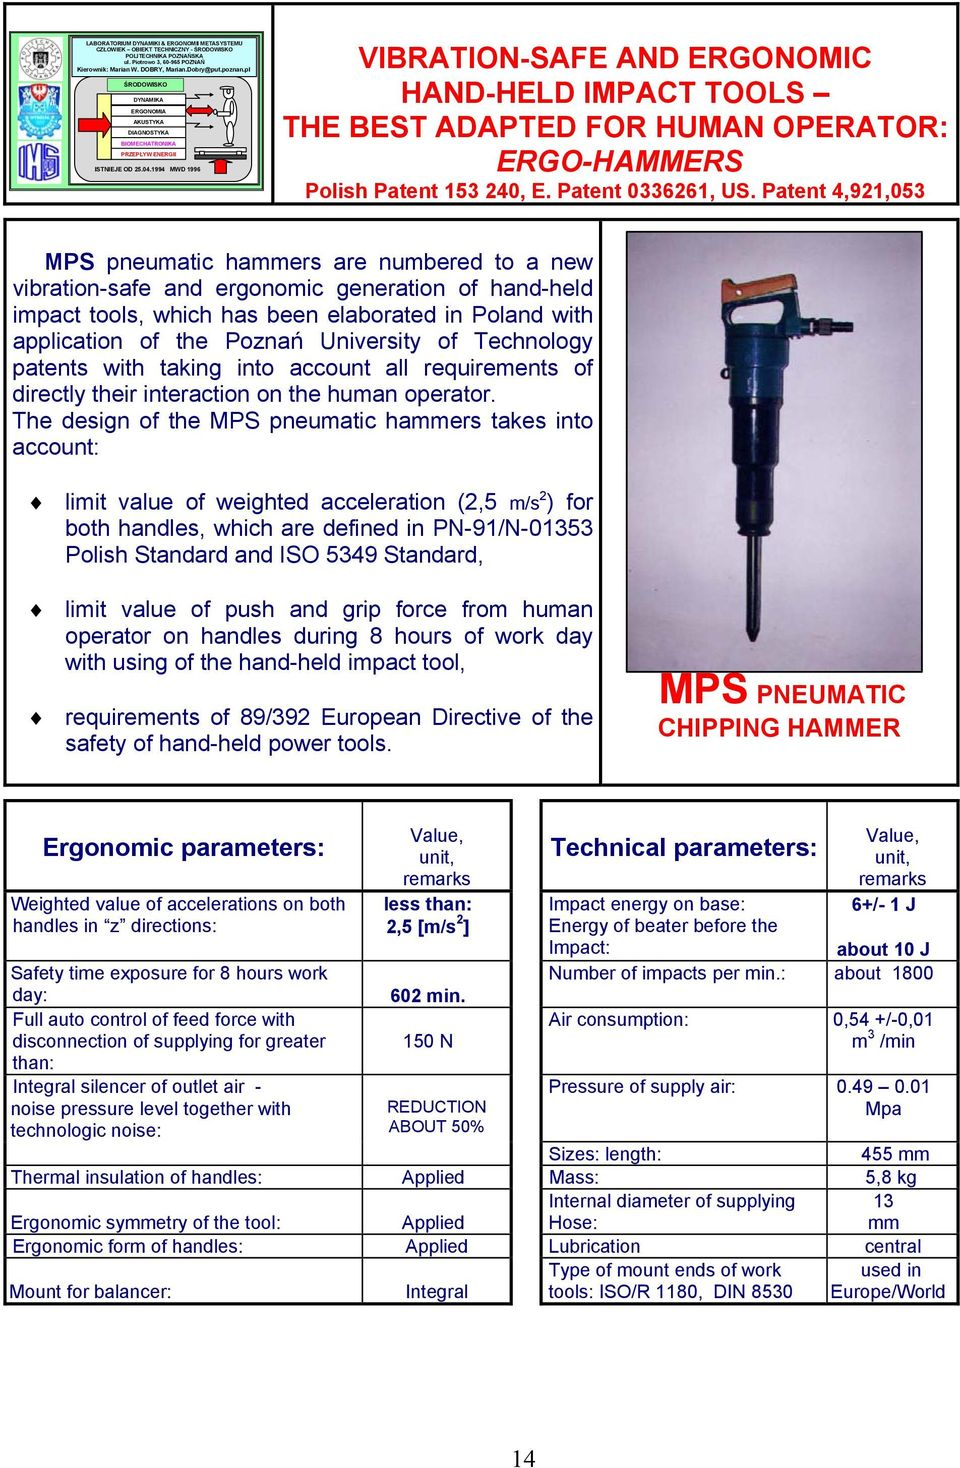 1994 MWD 1996 VIBRATION-SAFE AND ERGONOMIC HAND-HELD IMPACT TOOLS THE BEST ADAPTED FOR HUMAN OPERATOR: ERGO-HAMMERS Polish Patent 153 240, E. Patent 0336261, US.